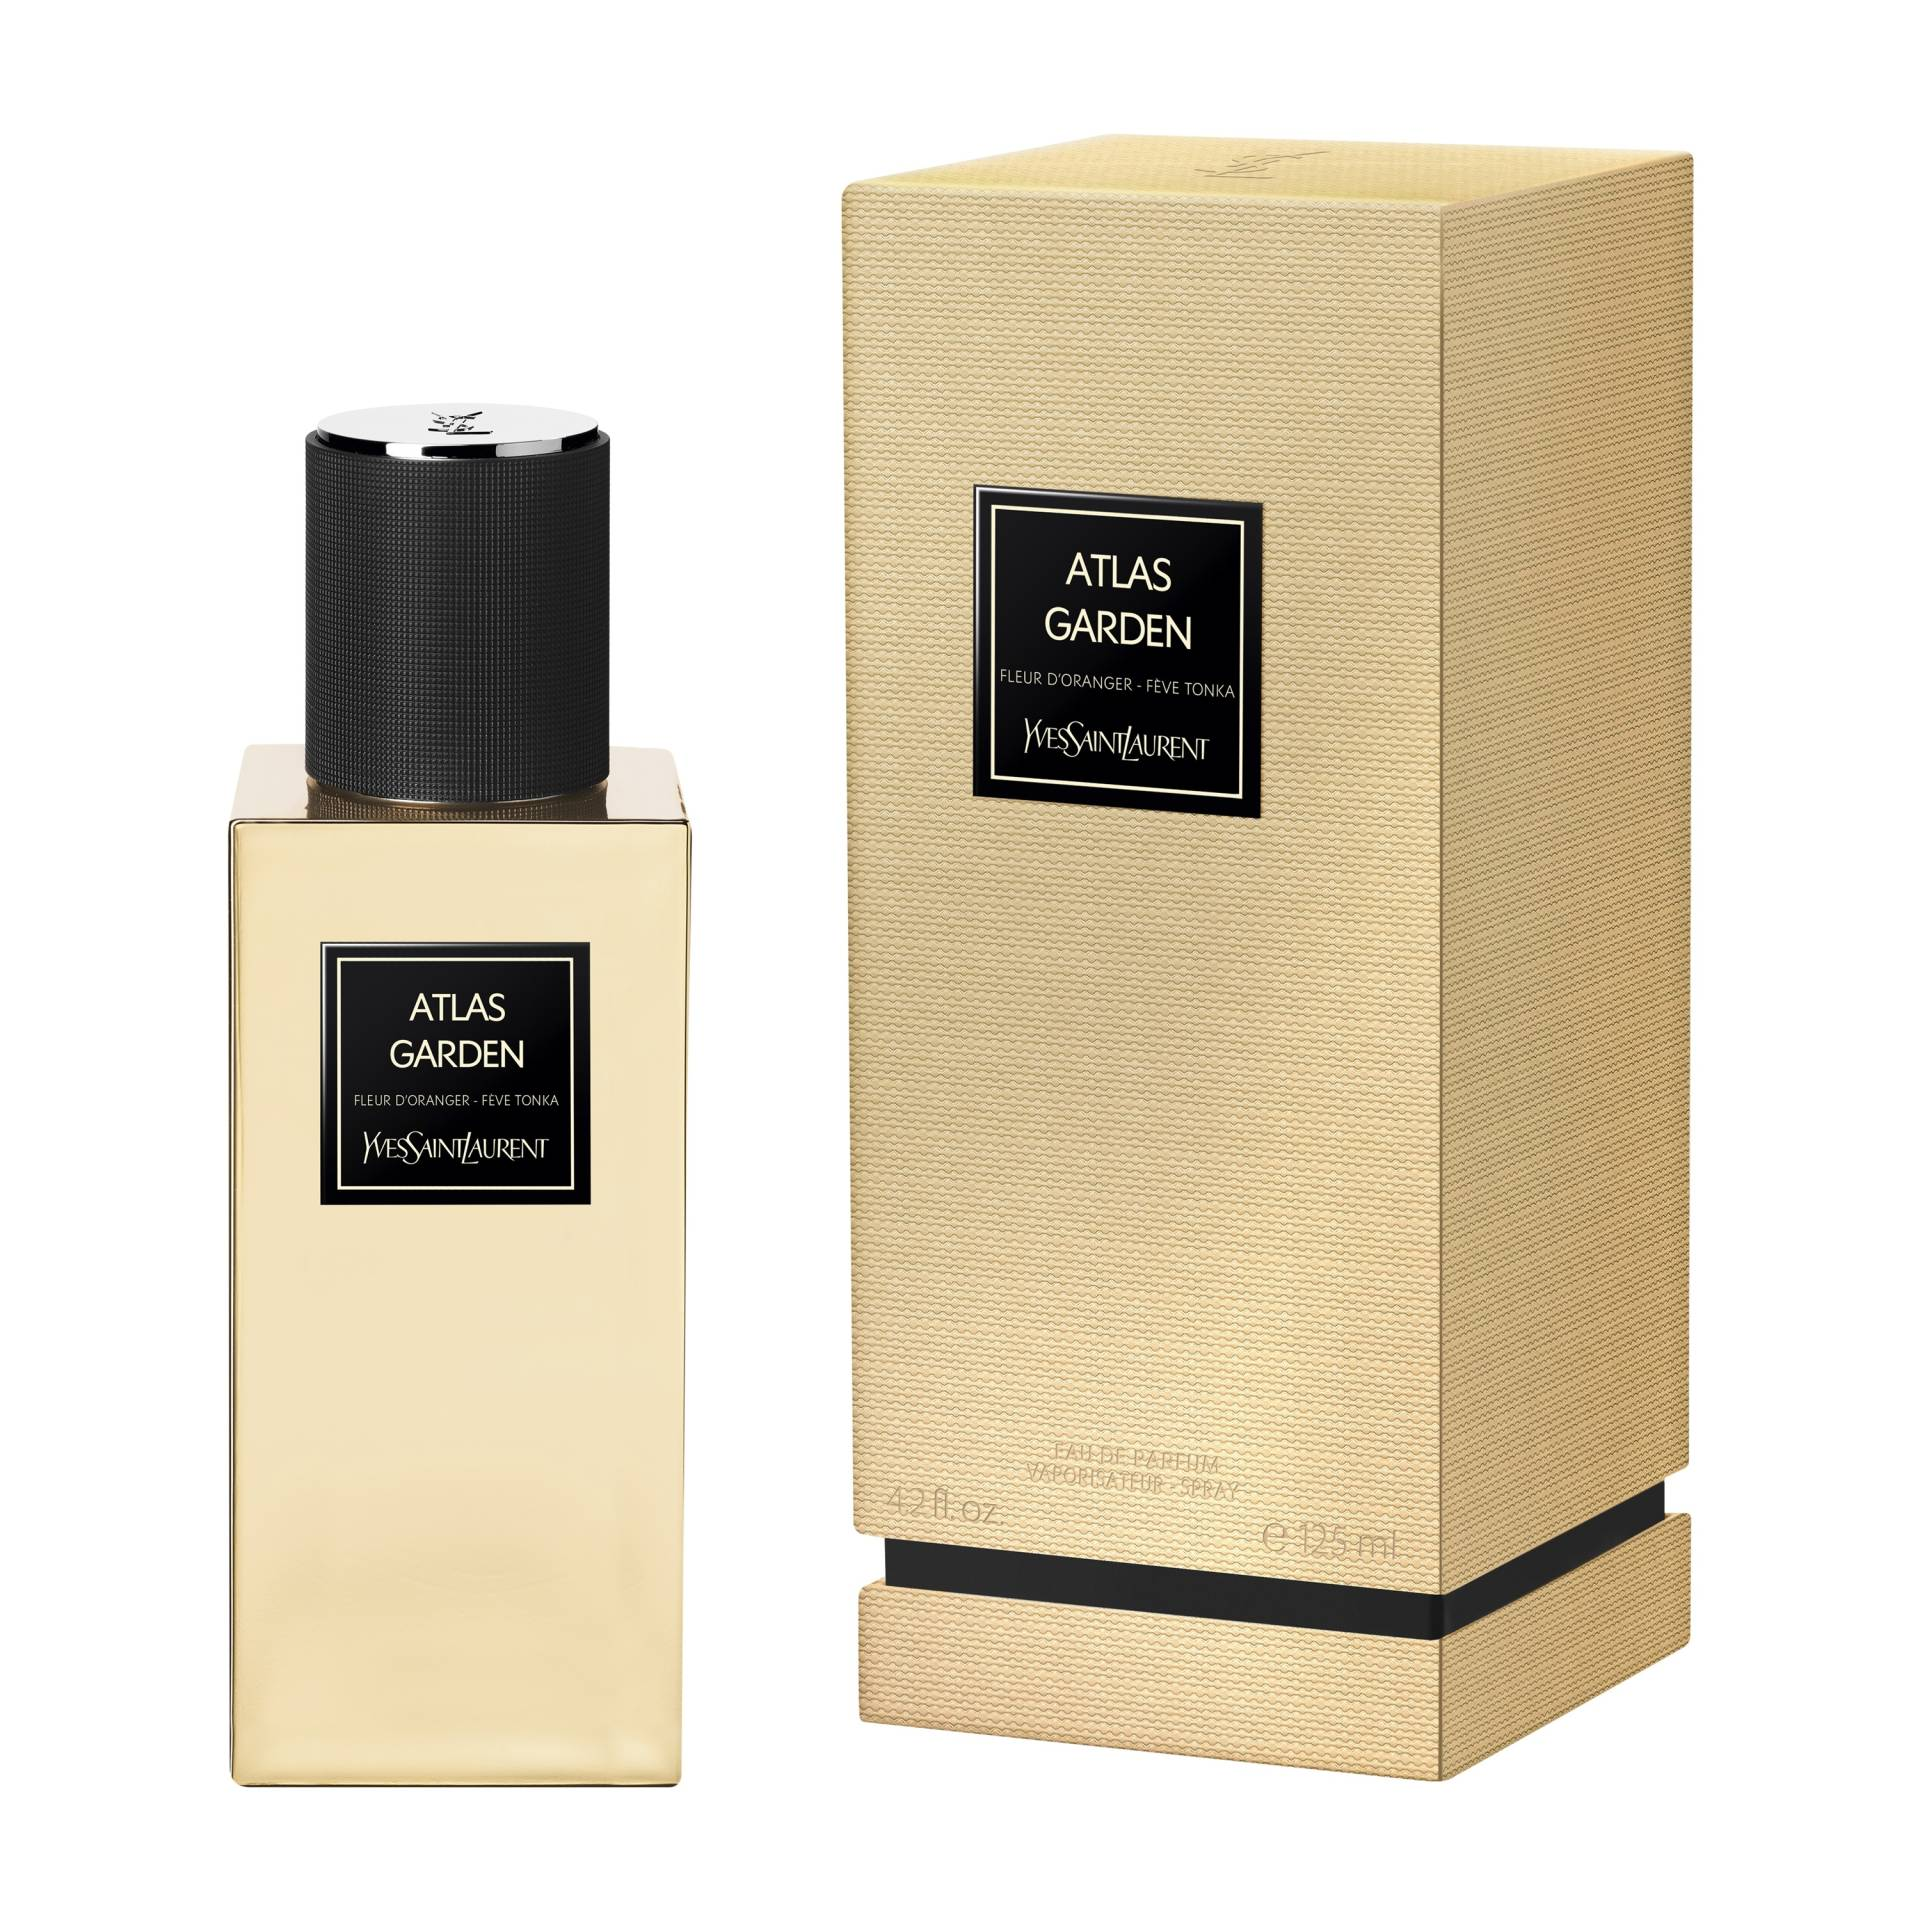 Atlas Garden by YSL, a new olfactory that pays homage to Morocco and its natural riches. - AFP Relaxnews